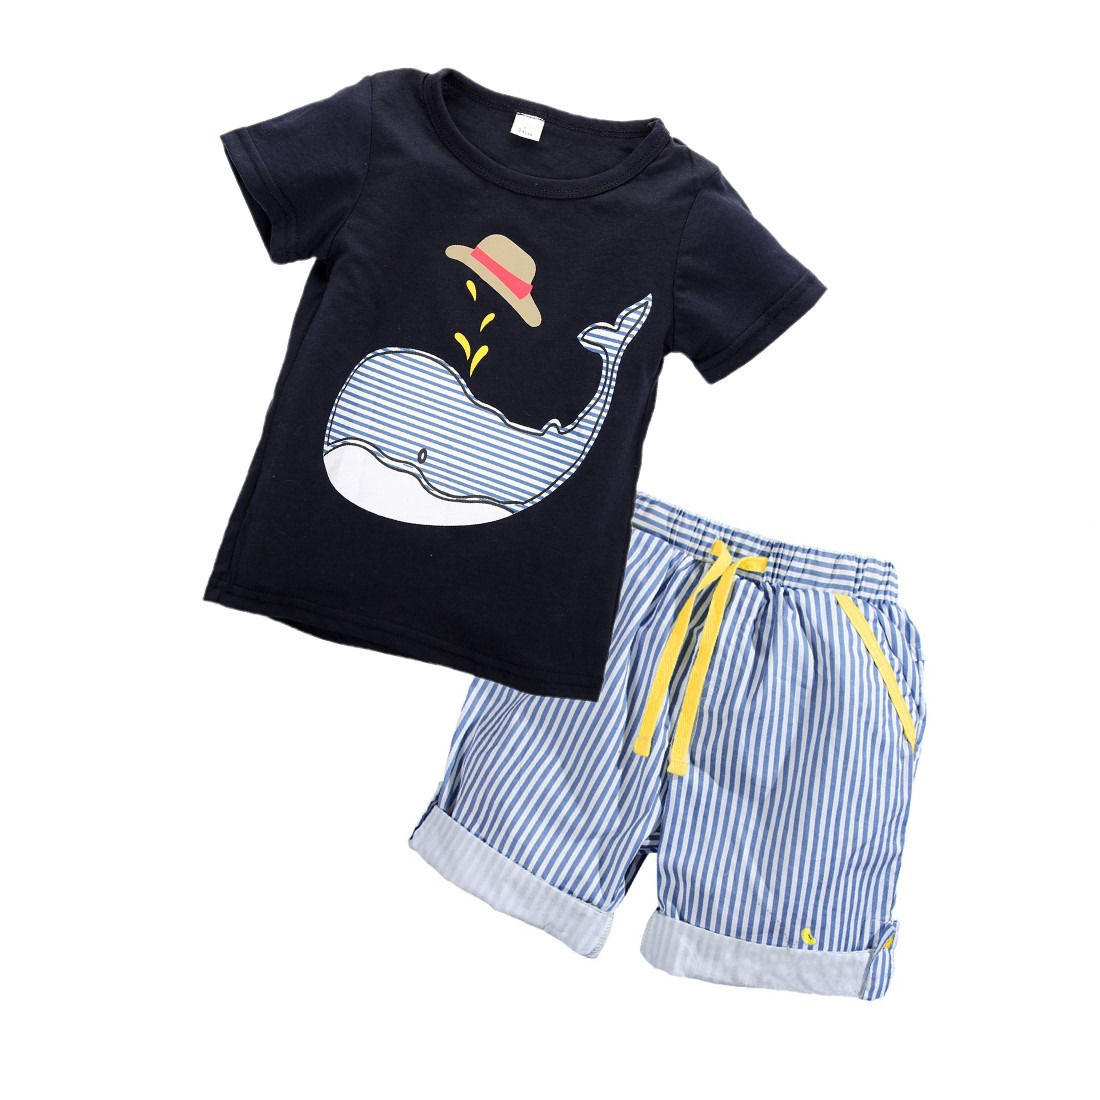 Llegada Infant Baby Summer Toddler Kids Boy Camisetas de manga corta - Ropa de ninos - foto 2